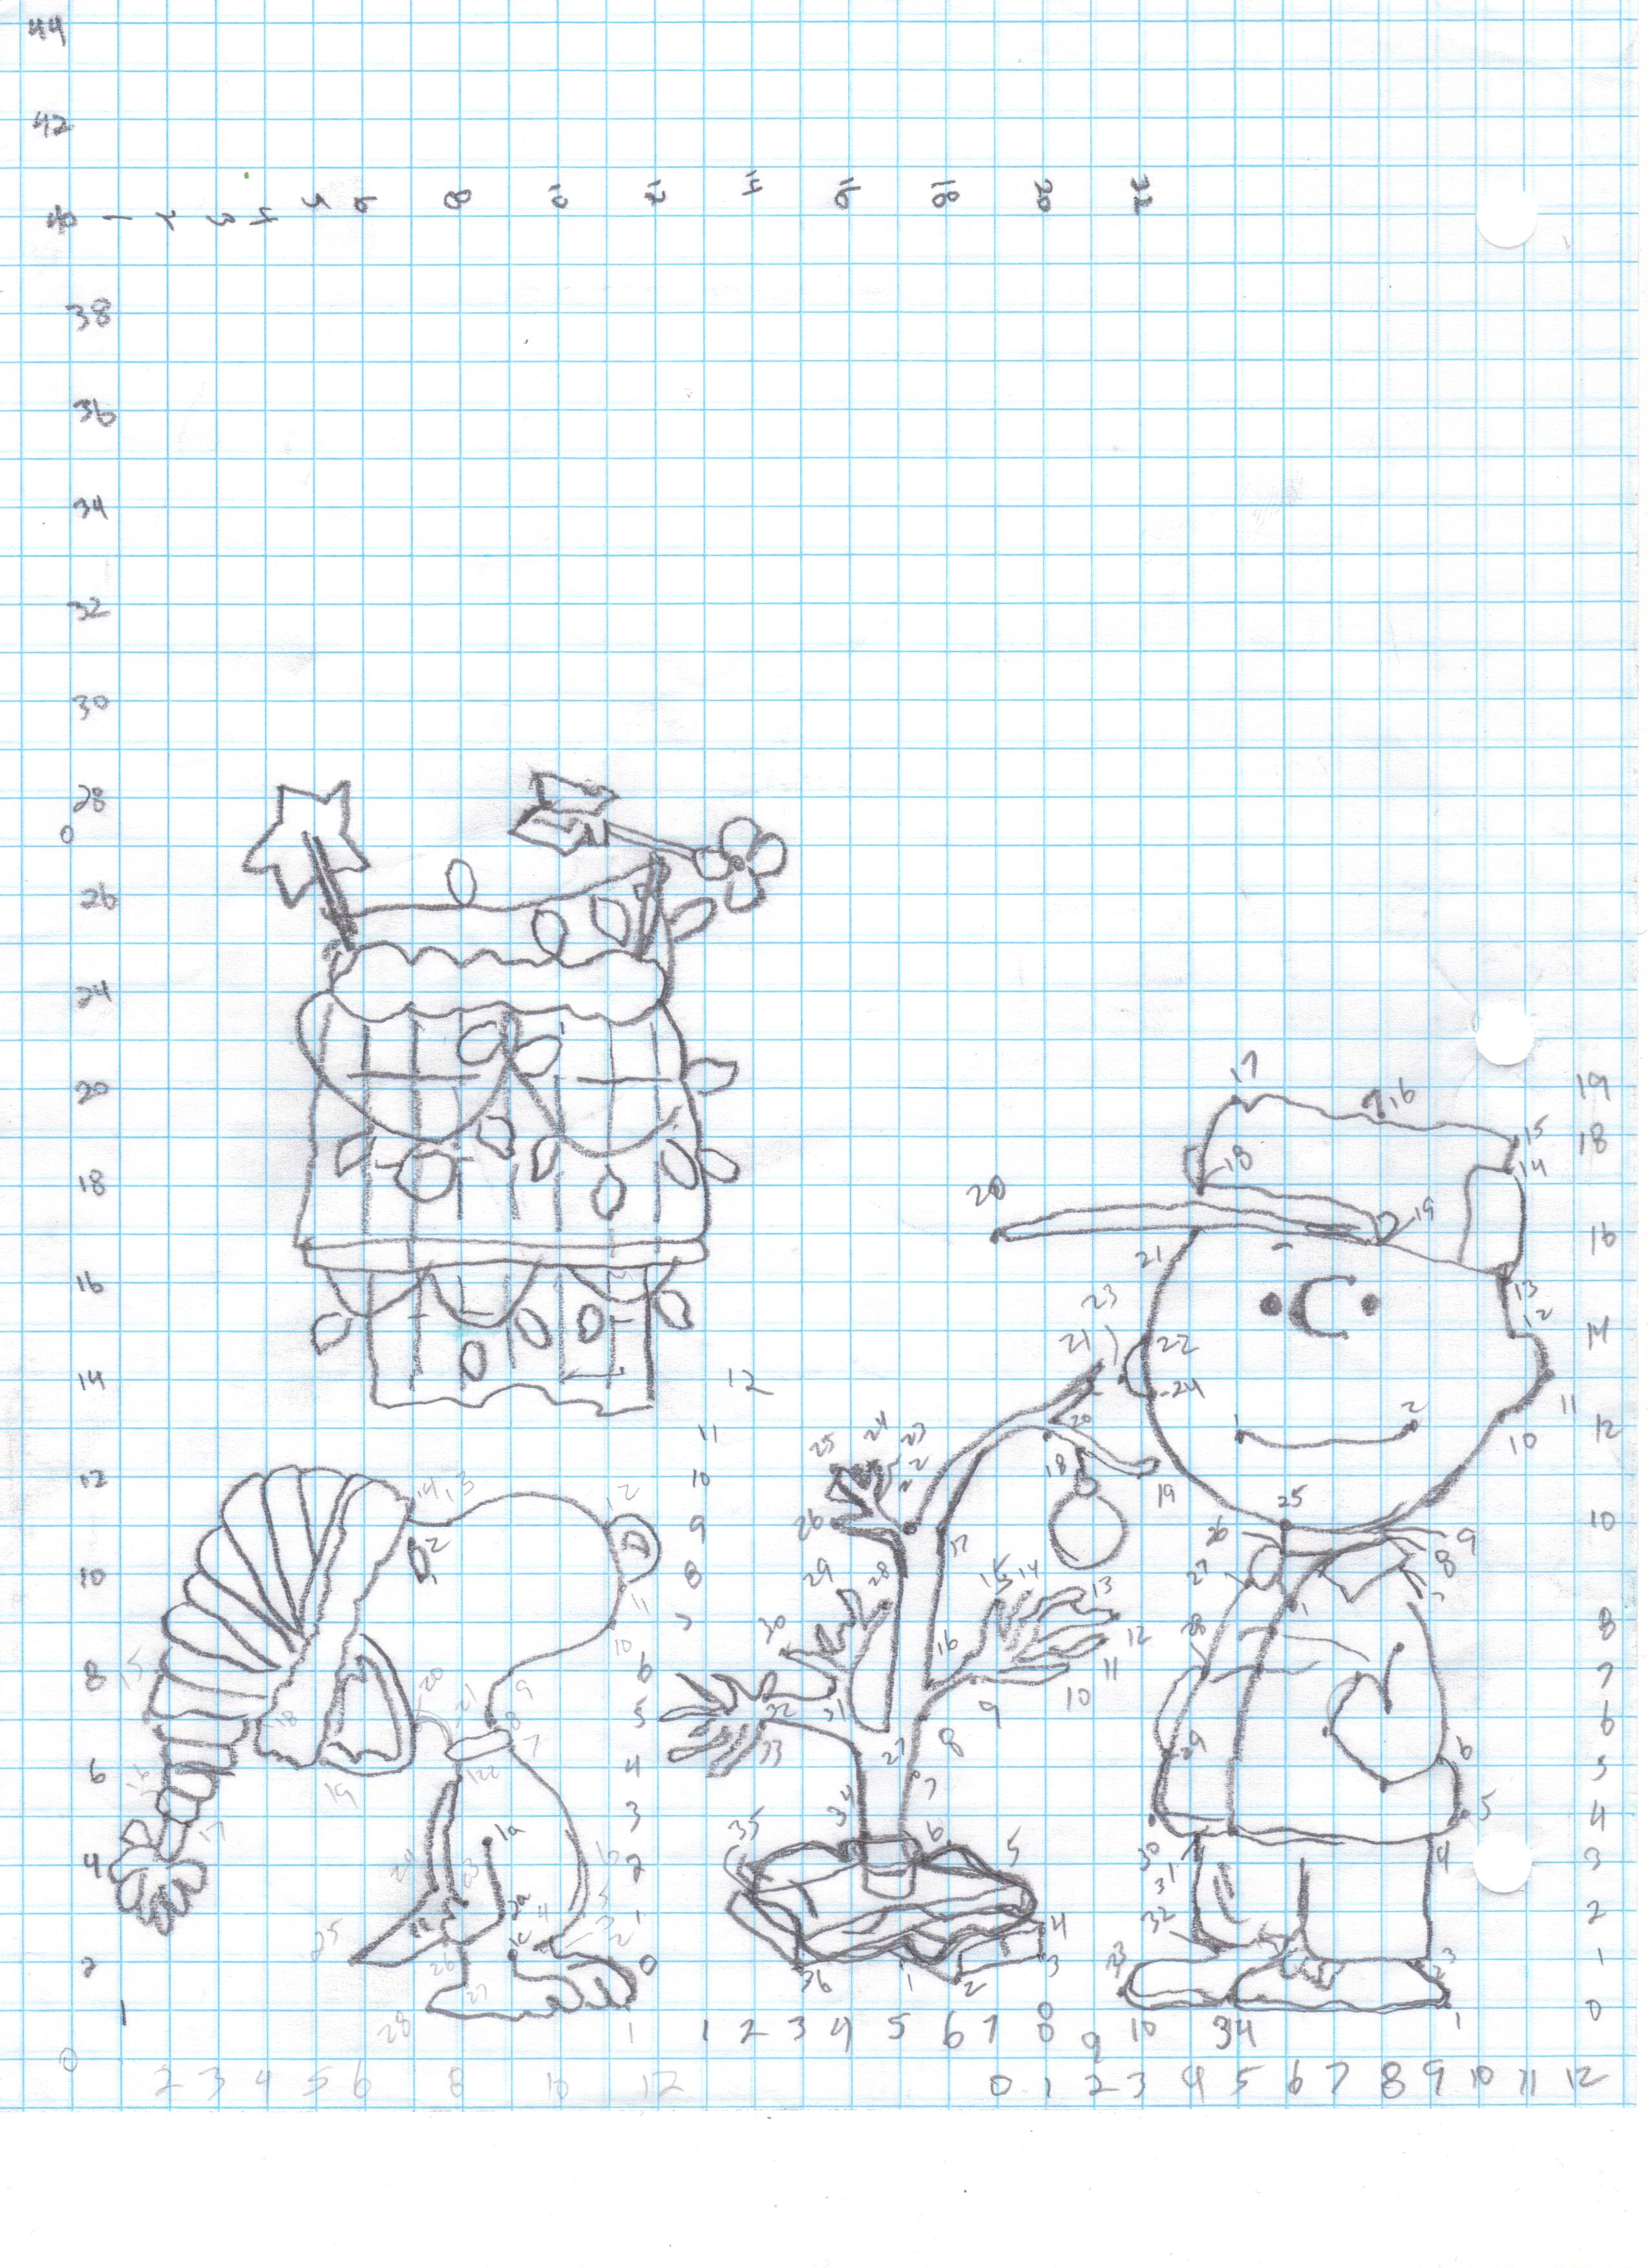 worksheet Christmas Coordinate Grid Pictures christmas coordinate pictures 2nd grade math worksheets addition charlie brown archives mdrm 028 pictures